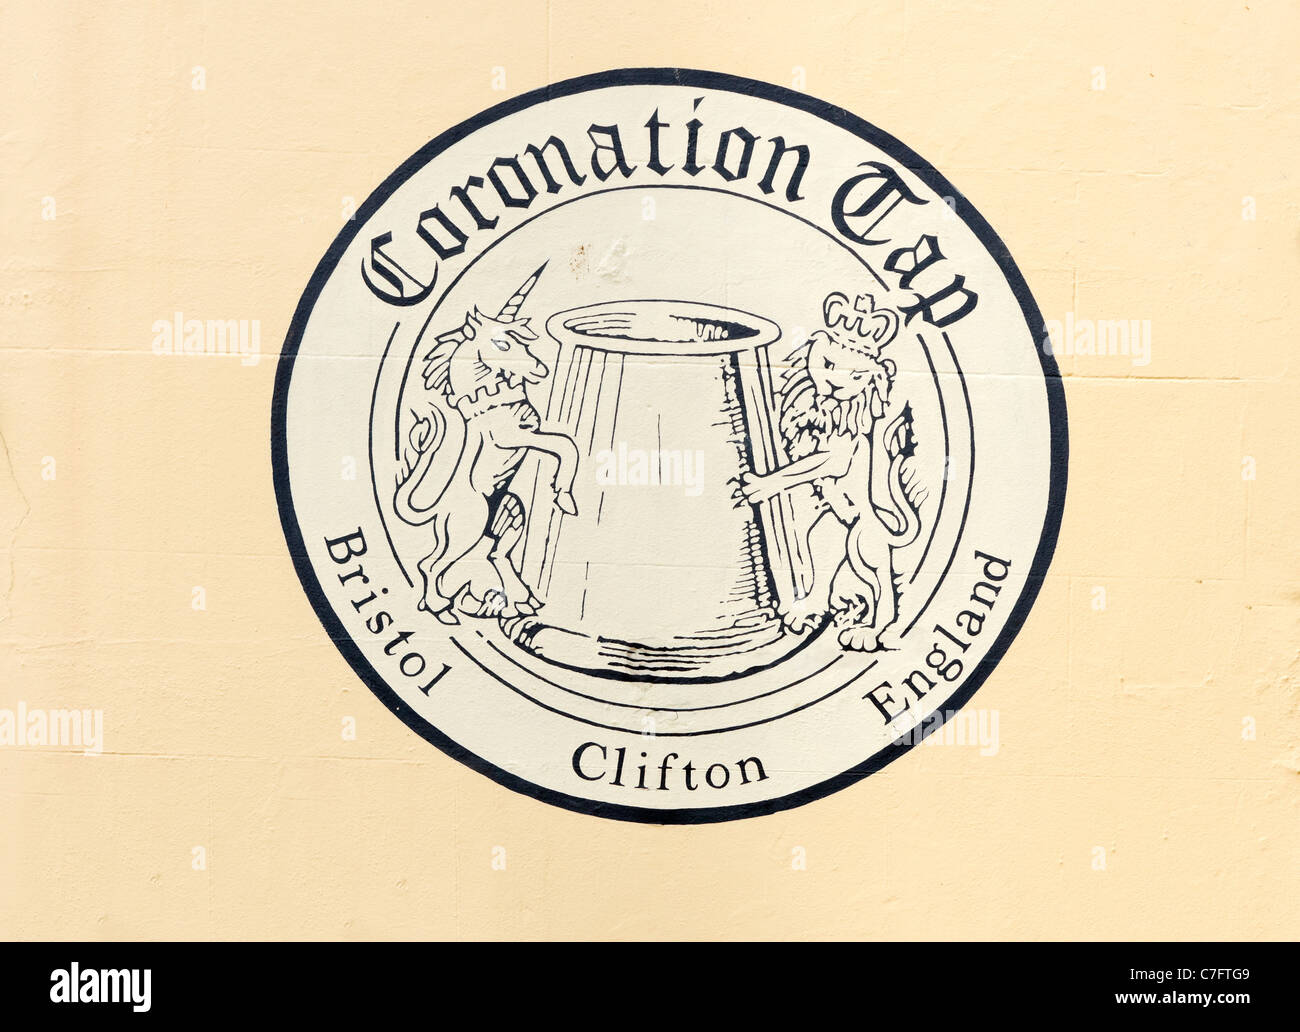 The Coronation Tap pub in Clifton, famous for its Scrumpy cider, Bristol, Avon, UK - Stock Image